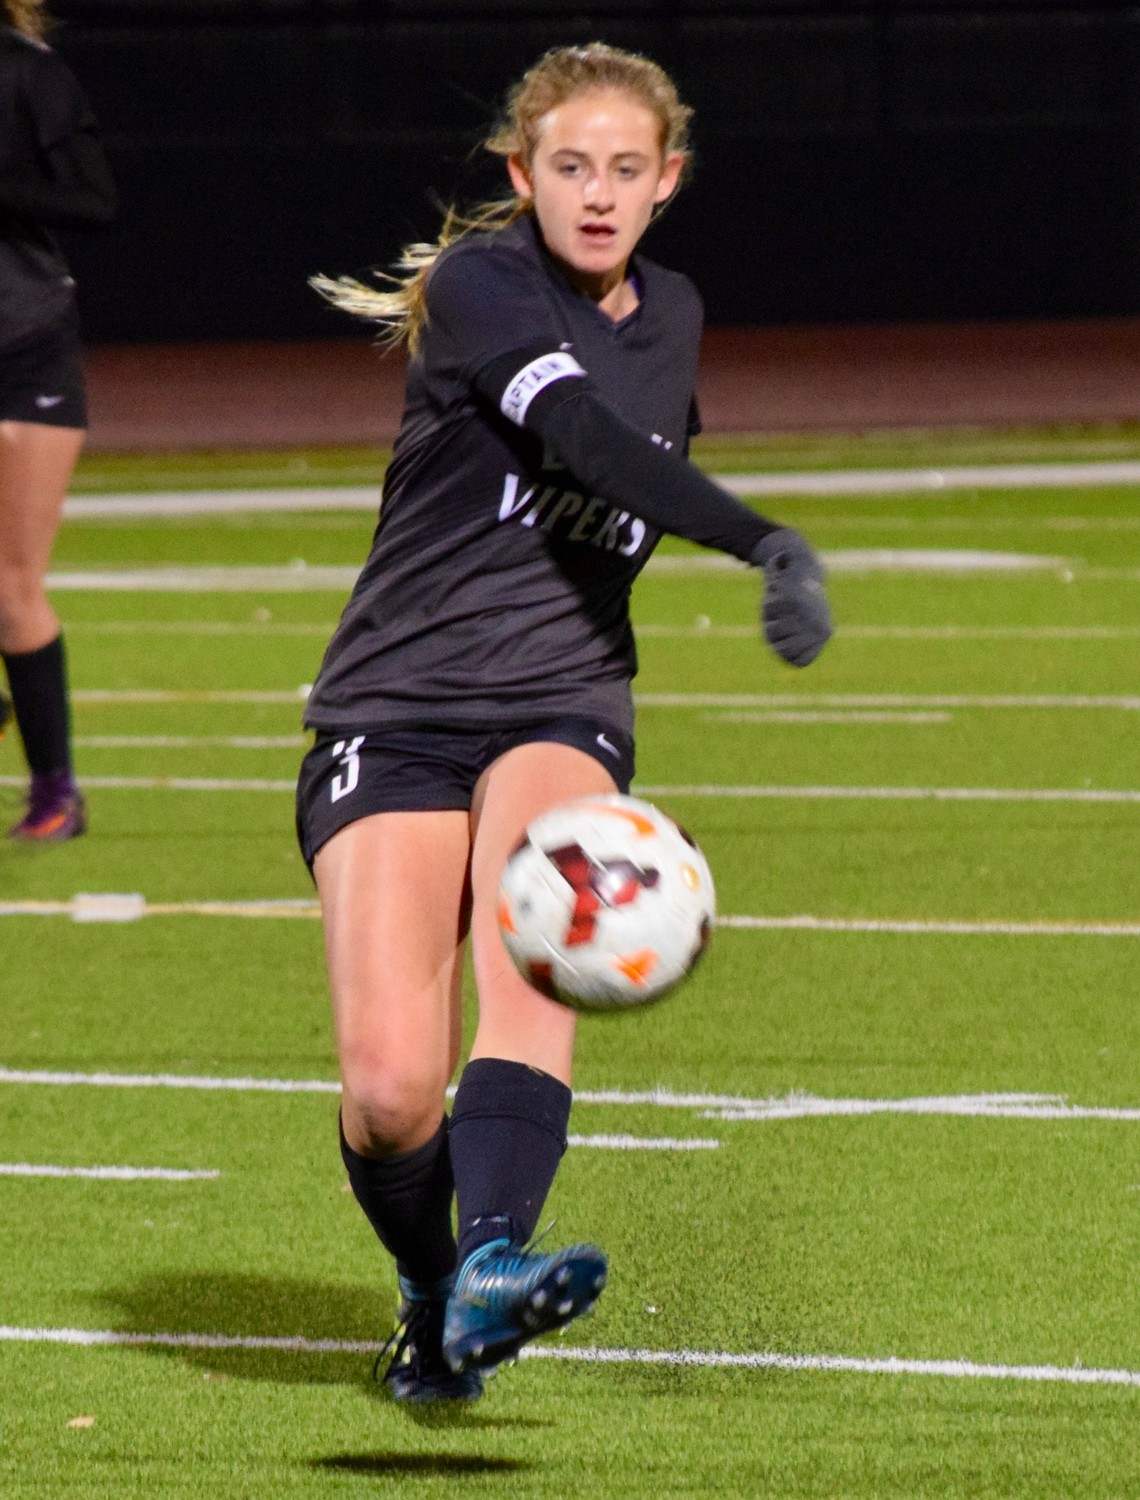 Grace Anders and Vandegrift won the District 25-6A title this year, finishing with a record of 9-1-2.